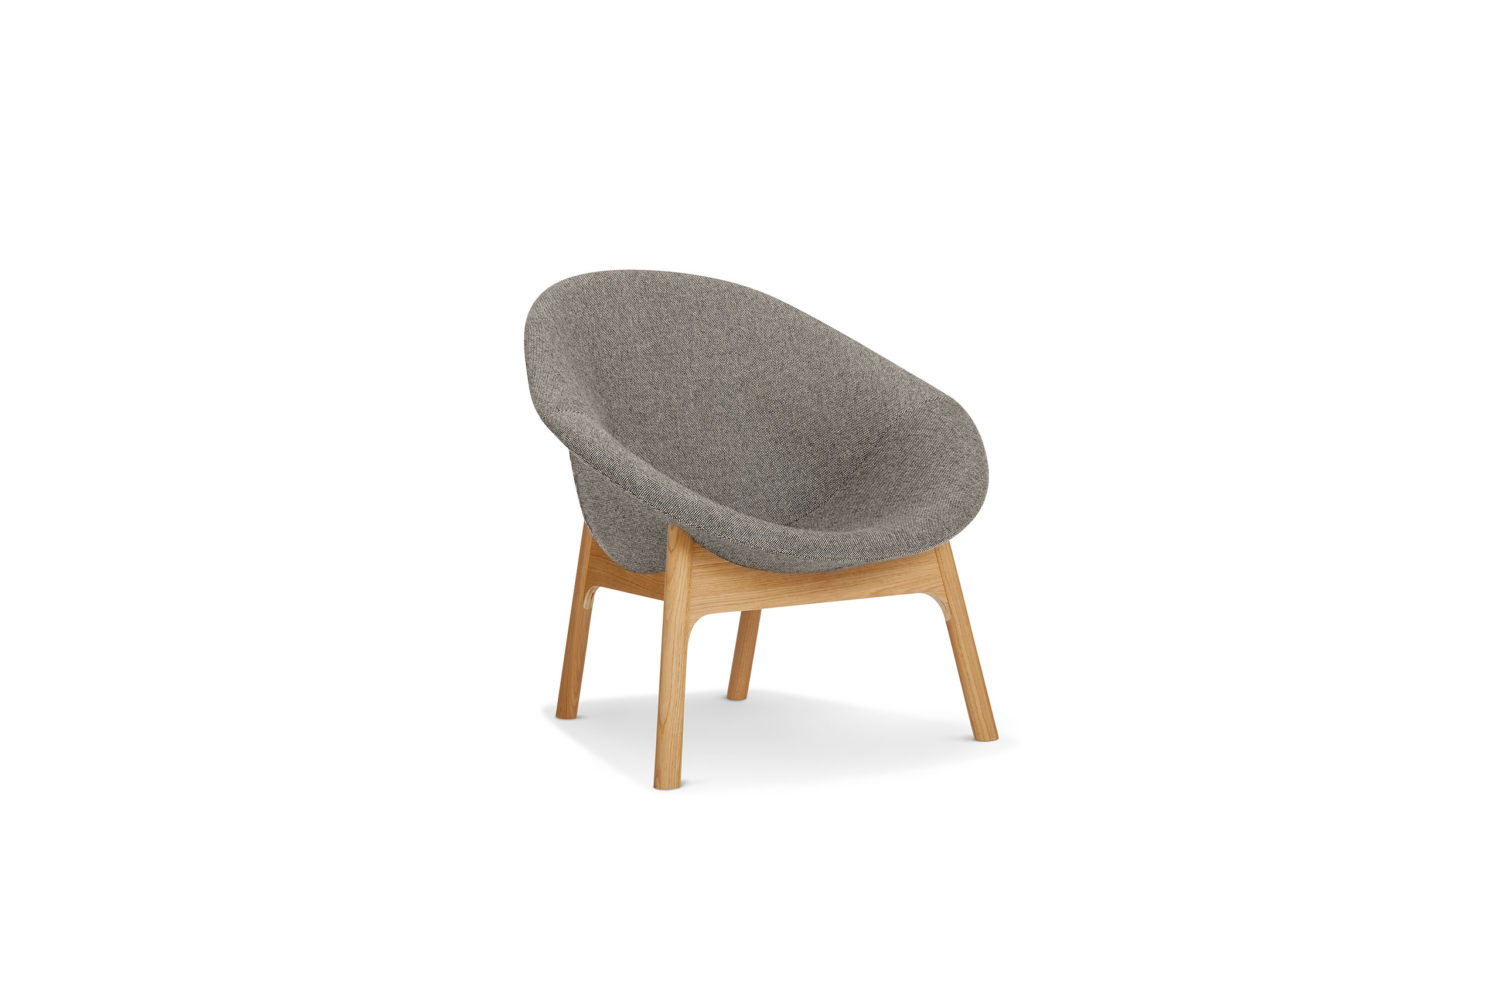 Lily Chair By Michael Sodeau 2